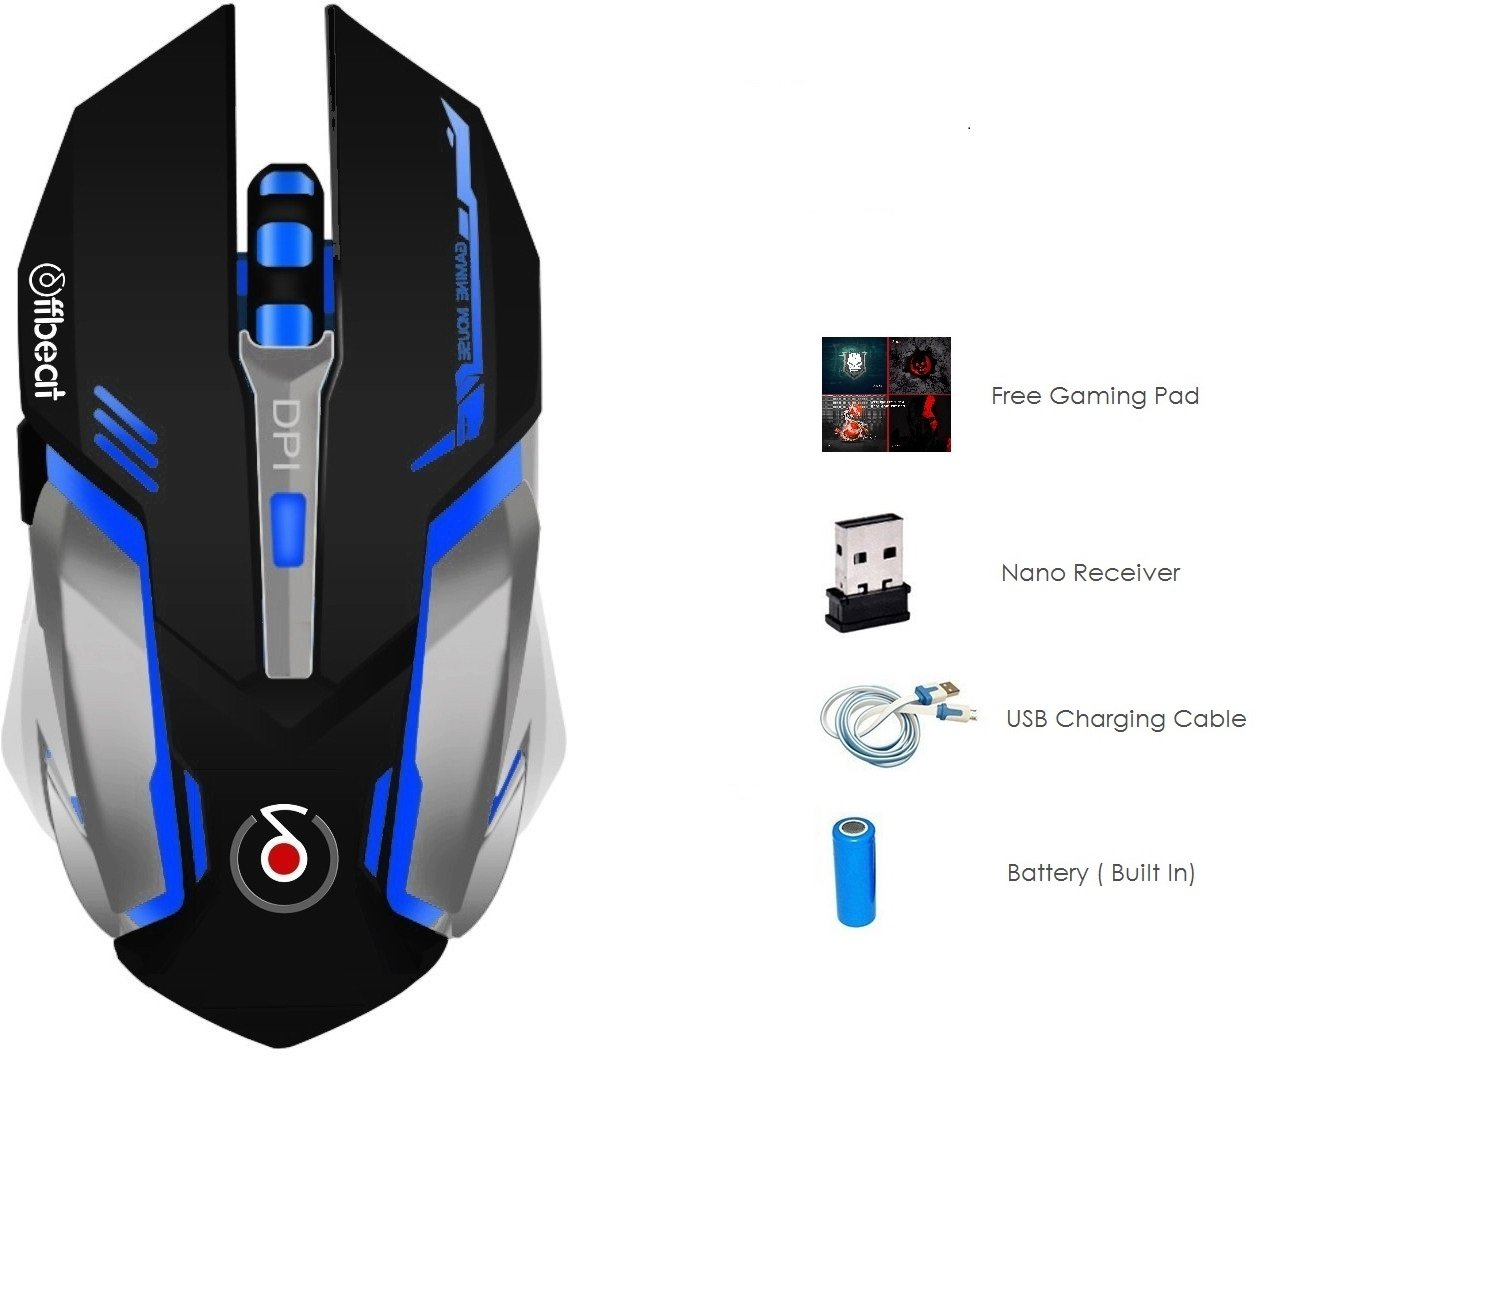 offbeat gaming mouse Best Gaming Mouse Brand in India